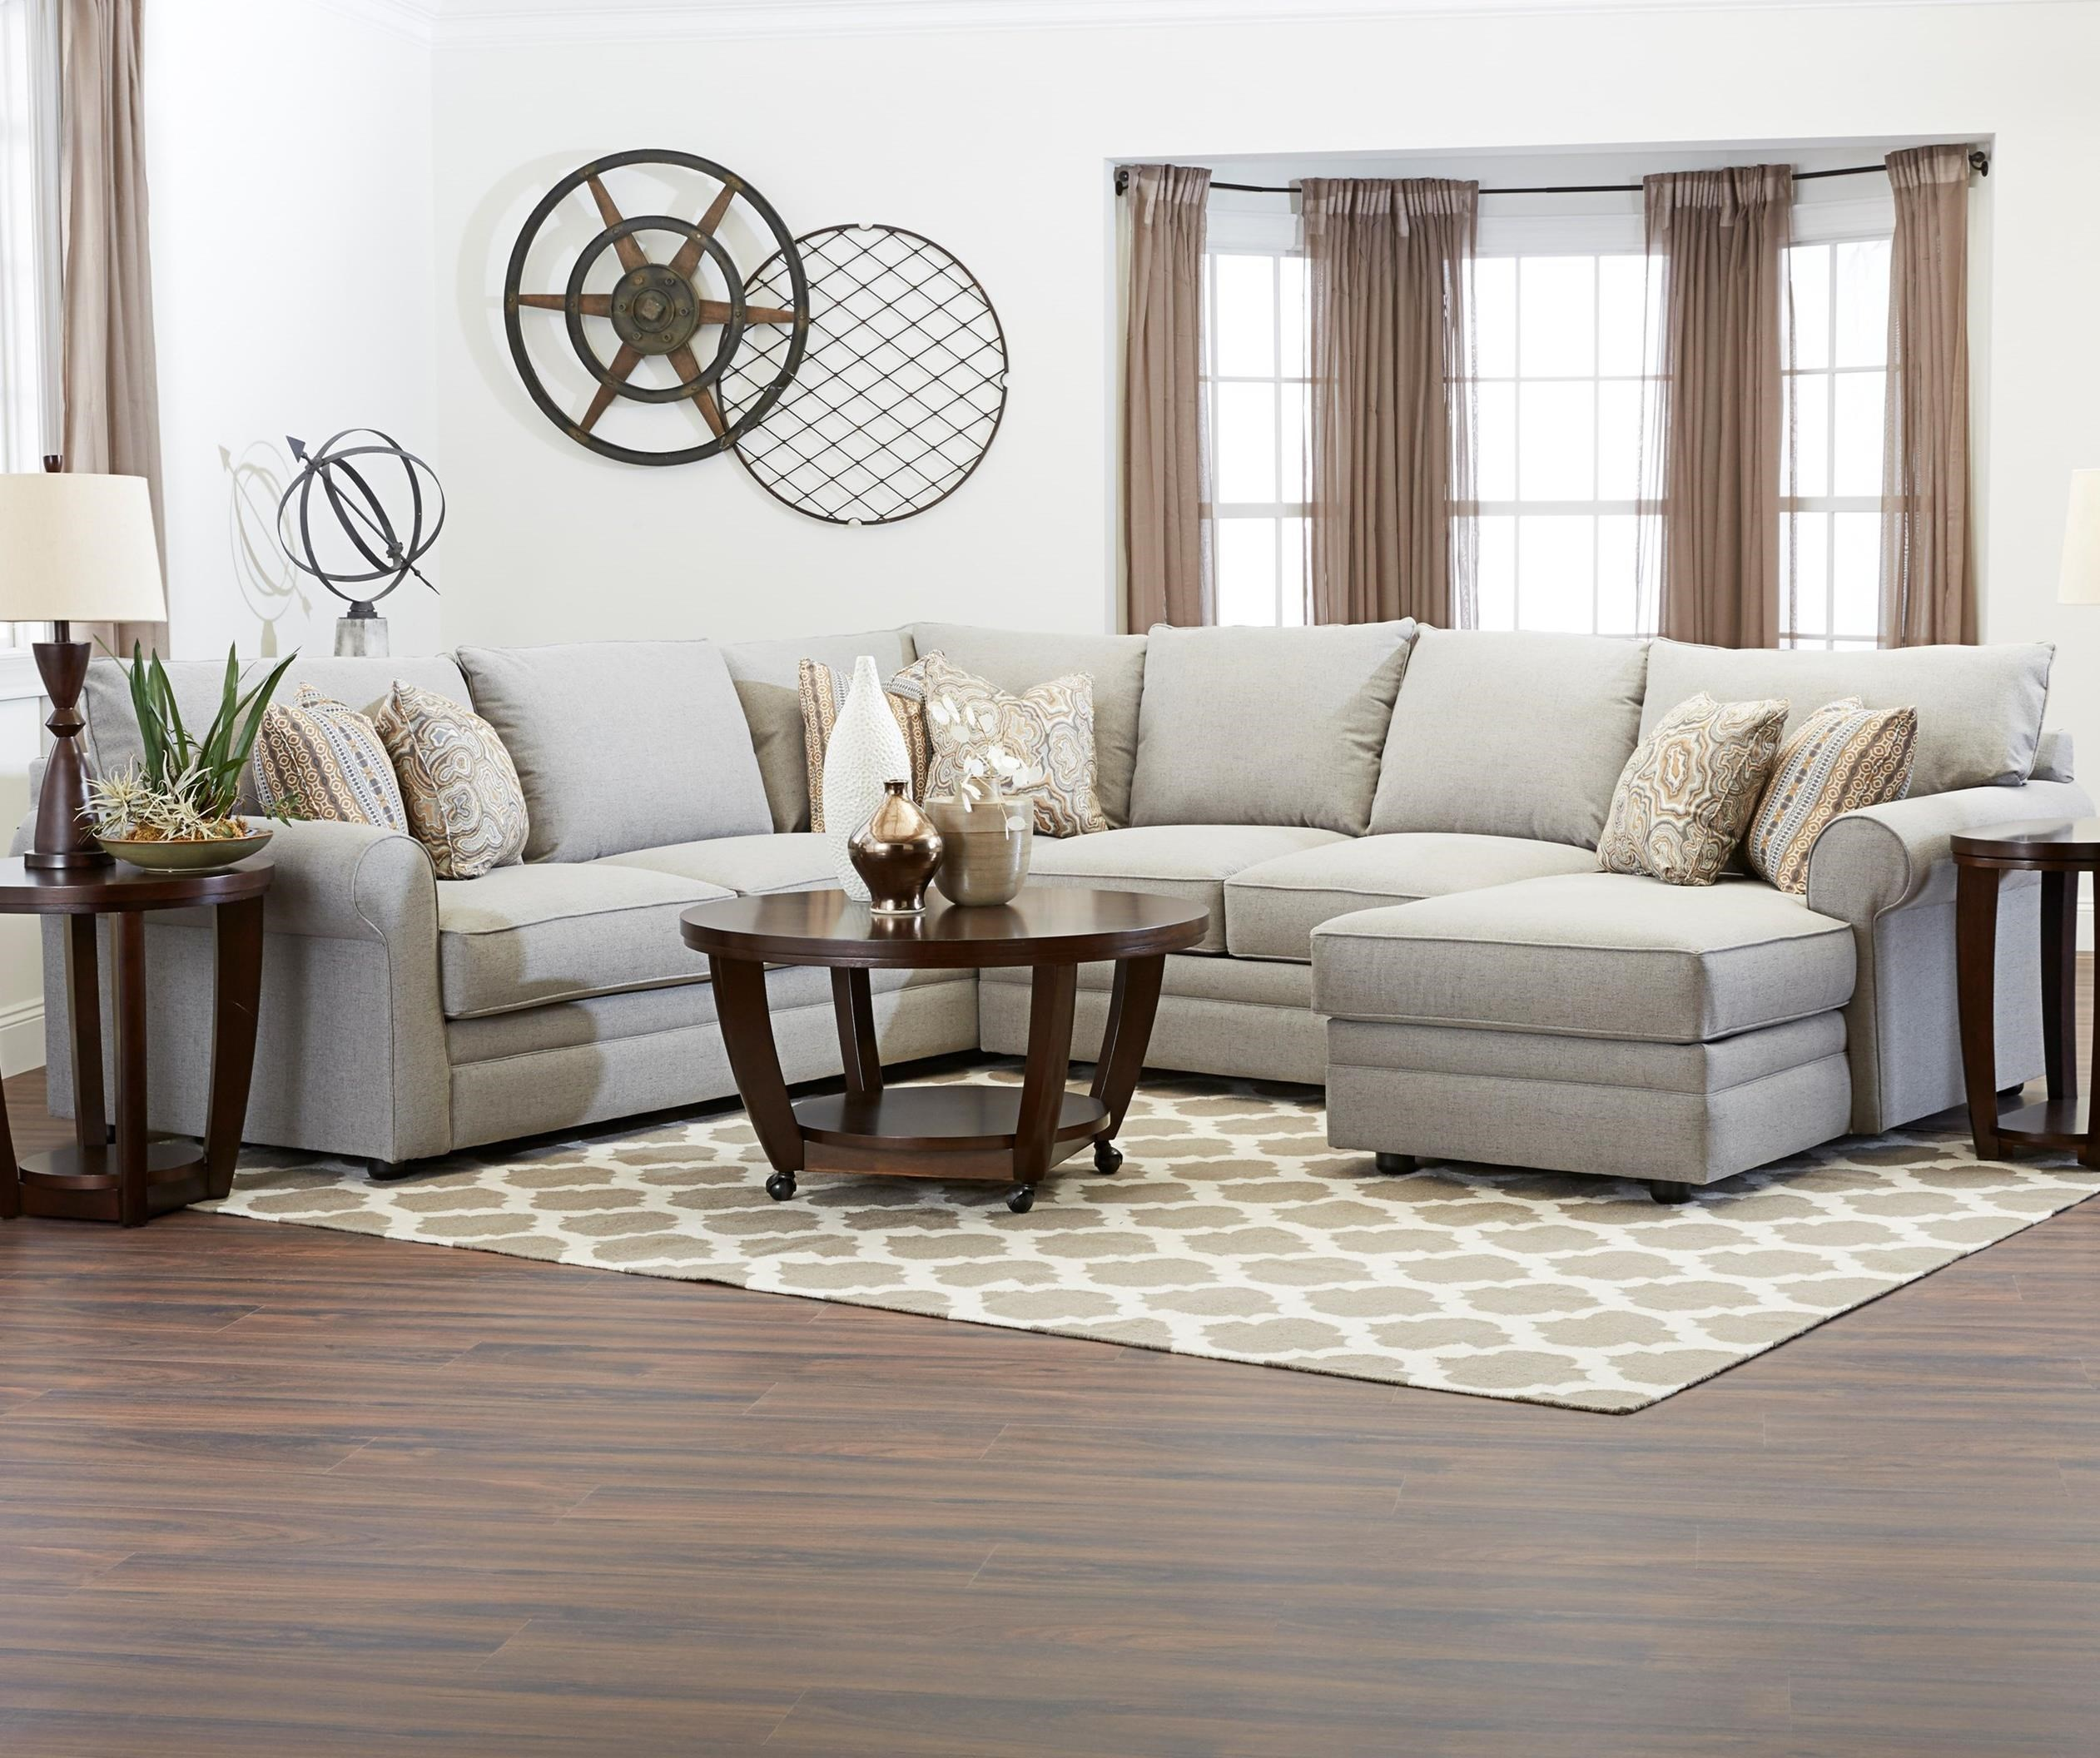 Comfy Casual Sectional Sofa with RAF Chaise by Klaussner